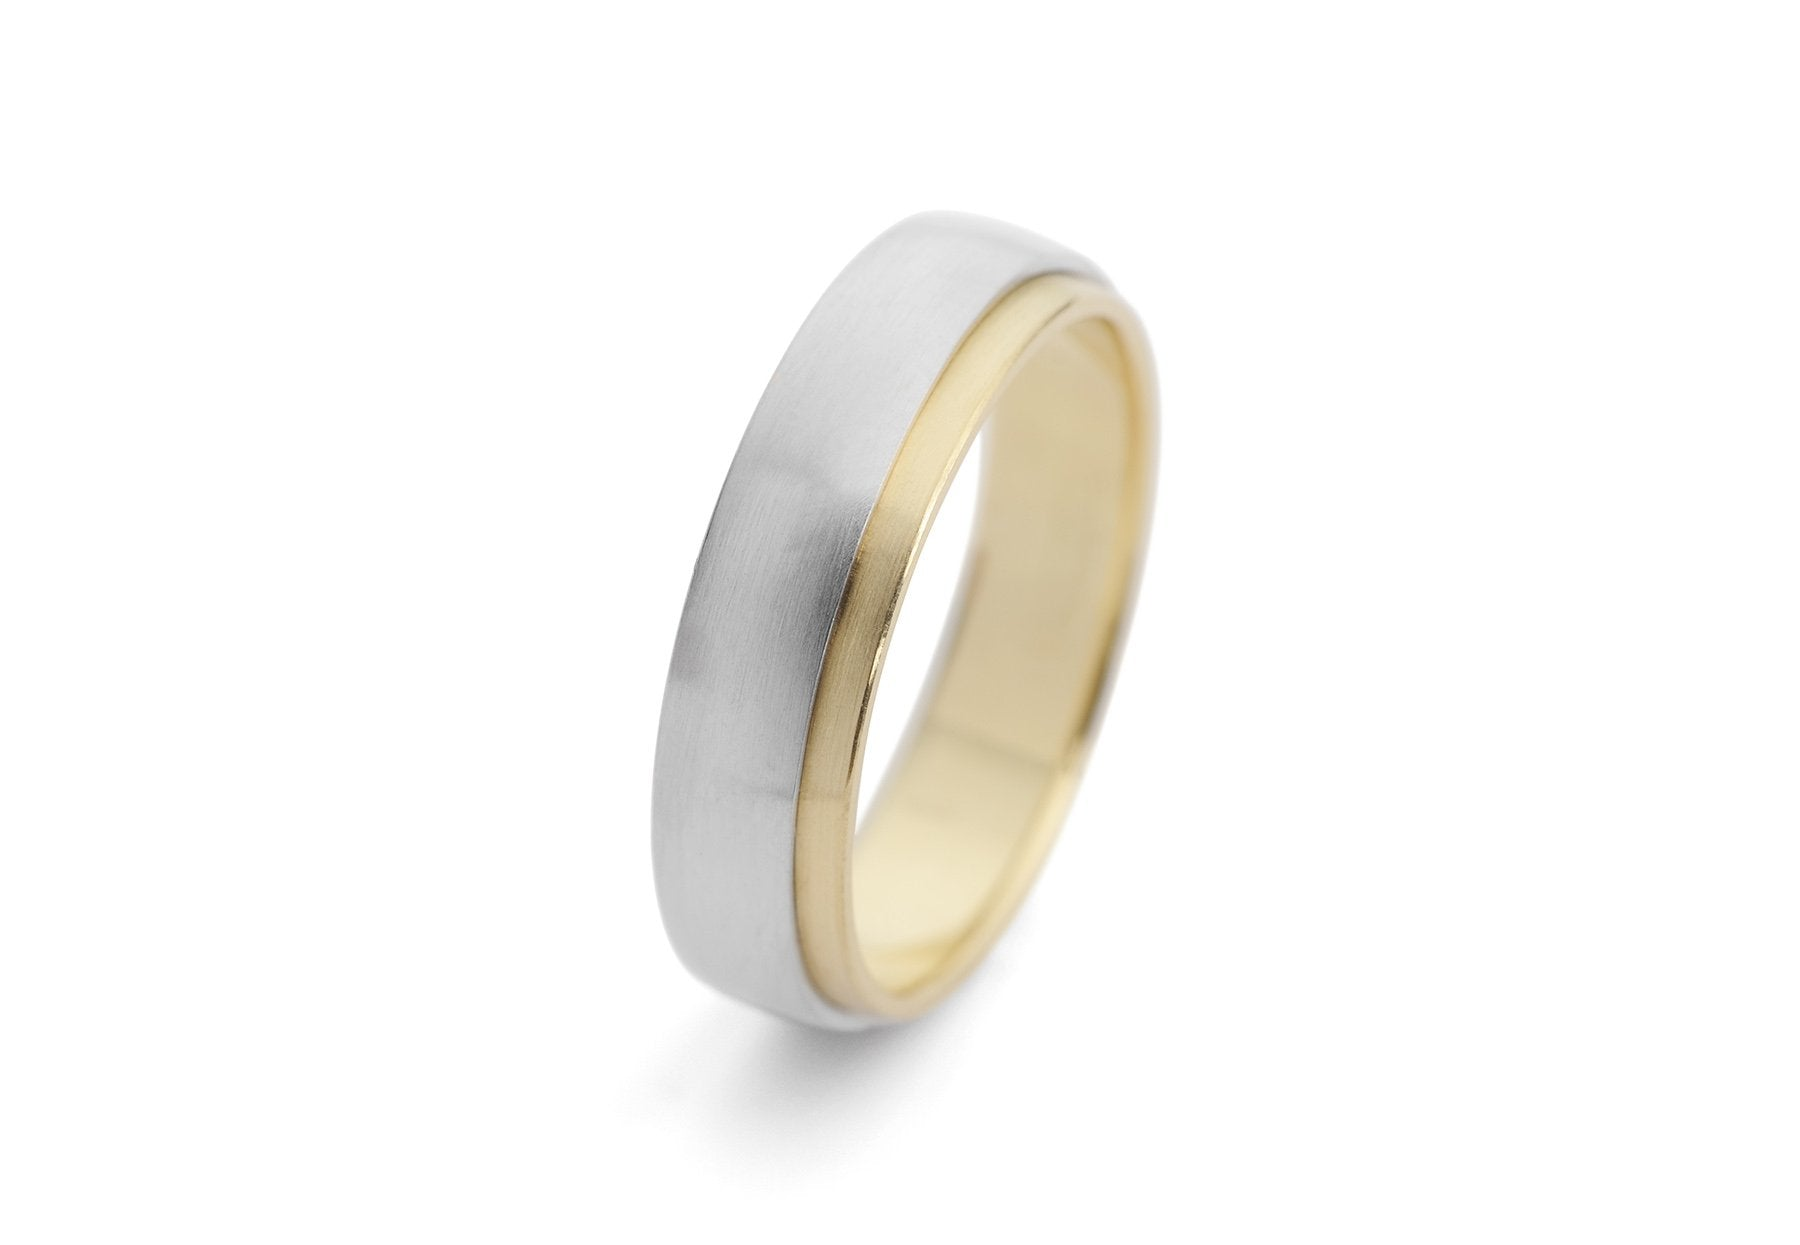 Sleeved men's mixed metal wedding band in 18 carat yellow gold and platinum